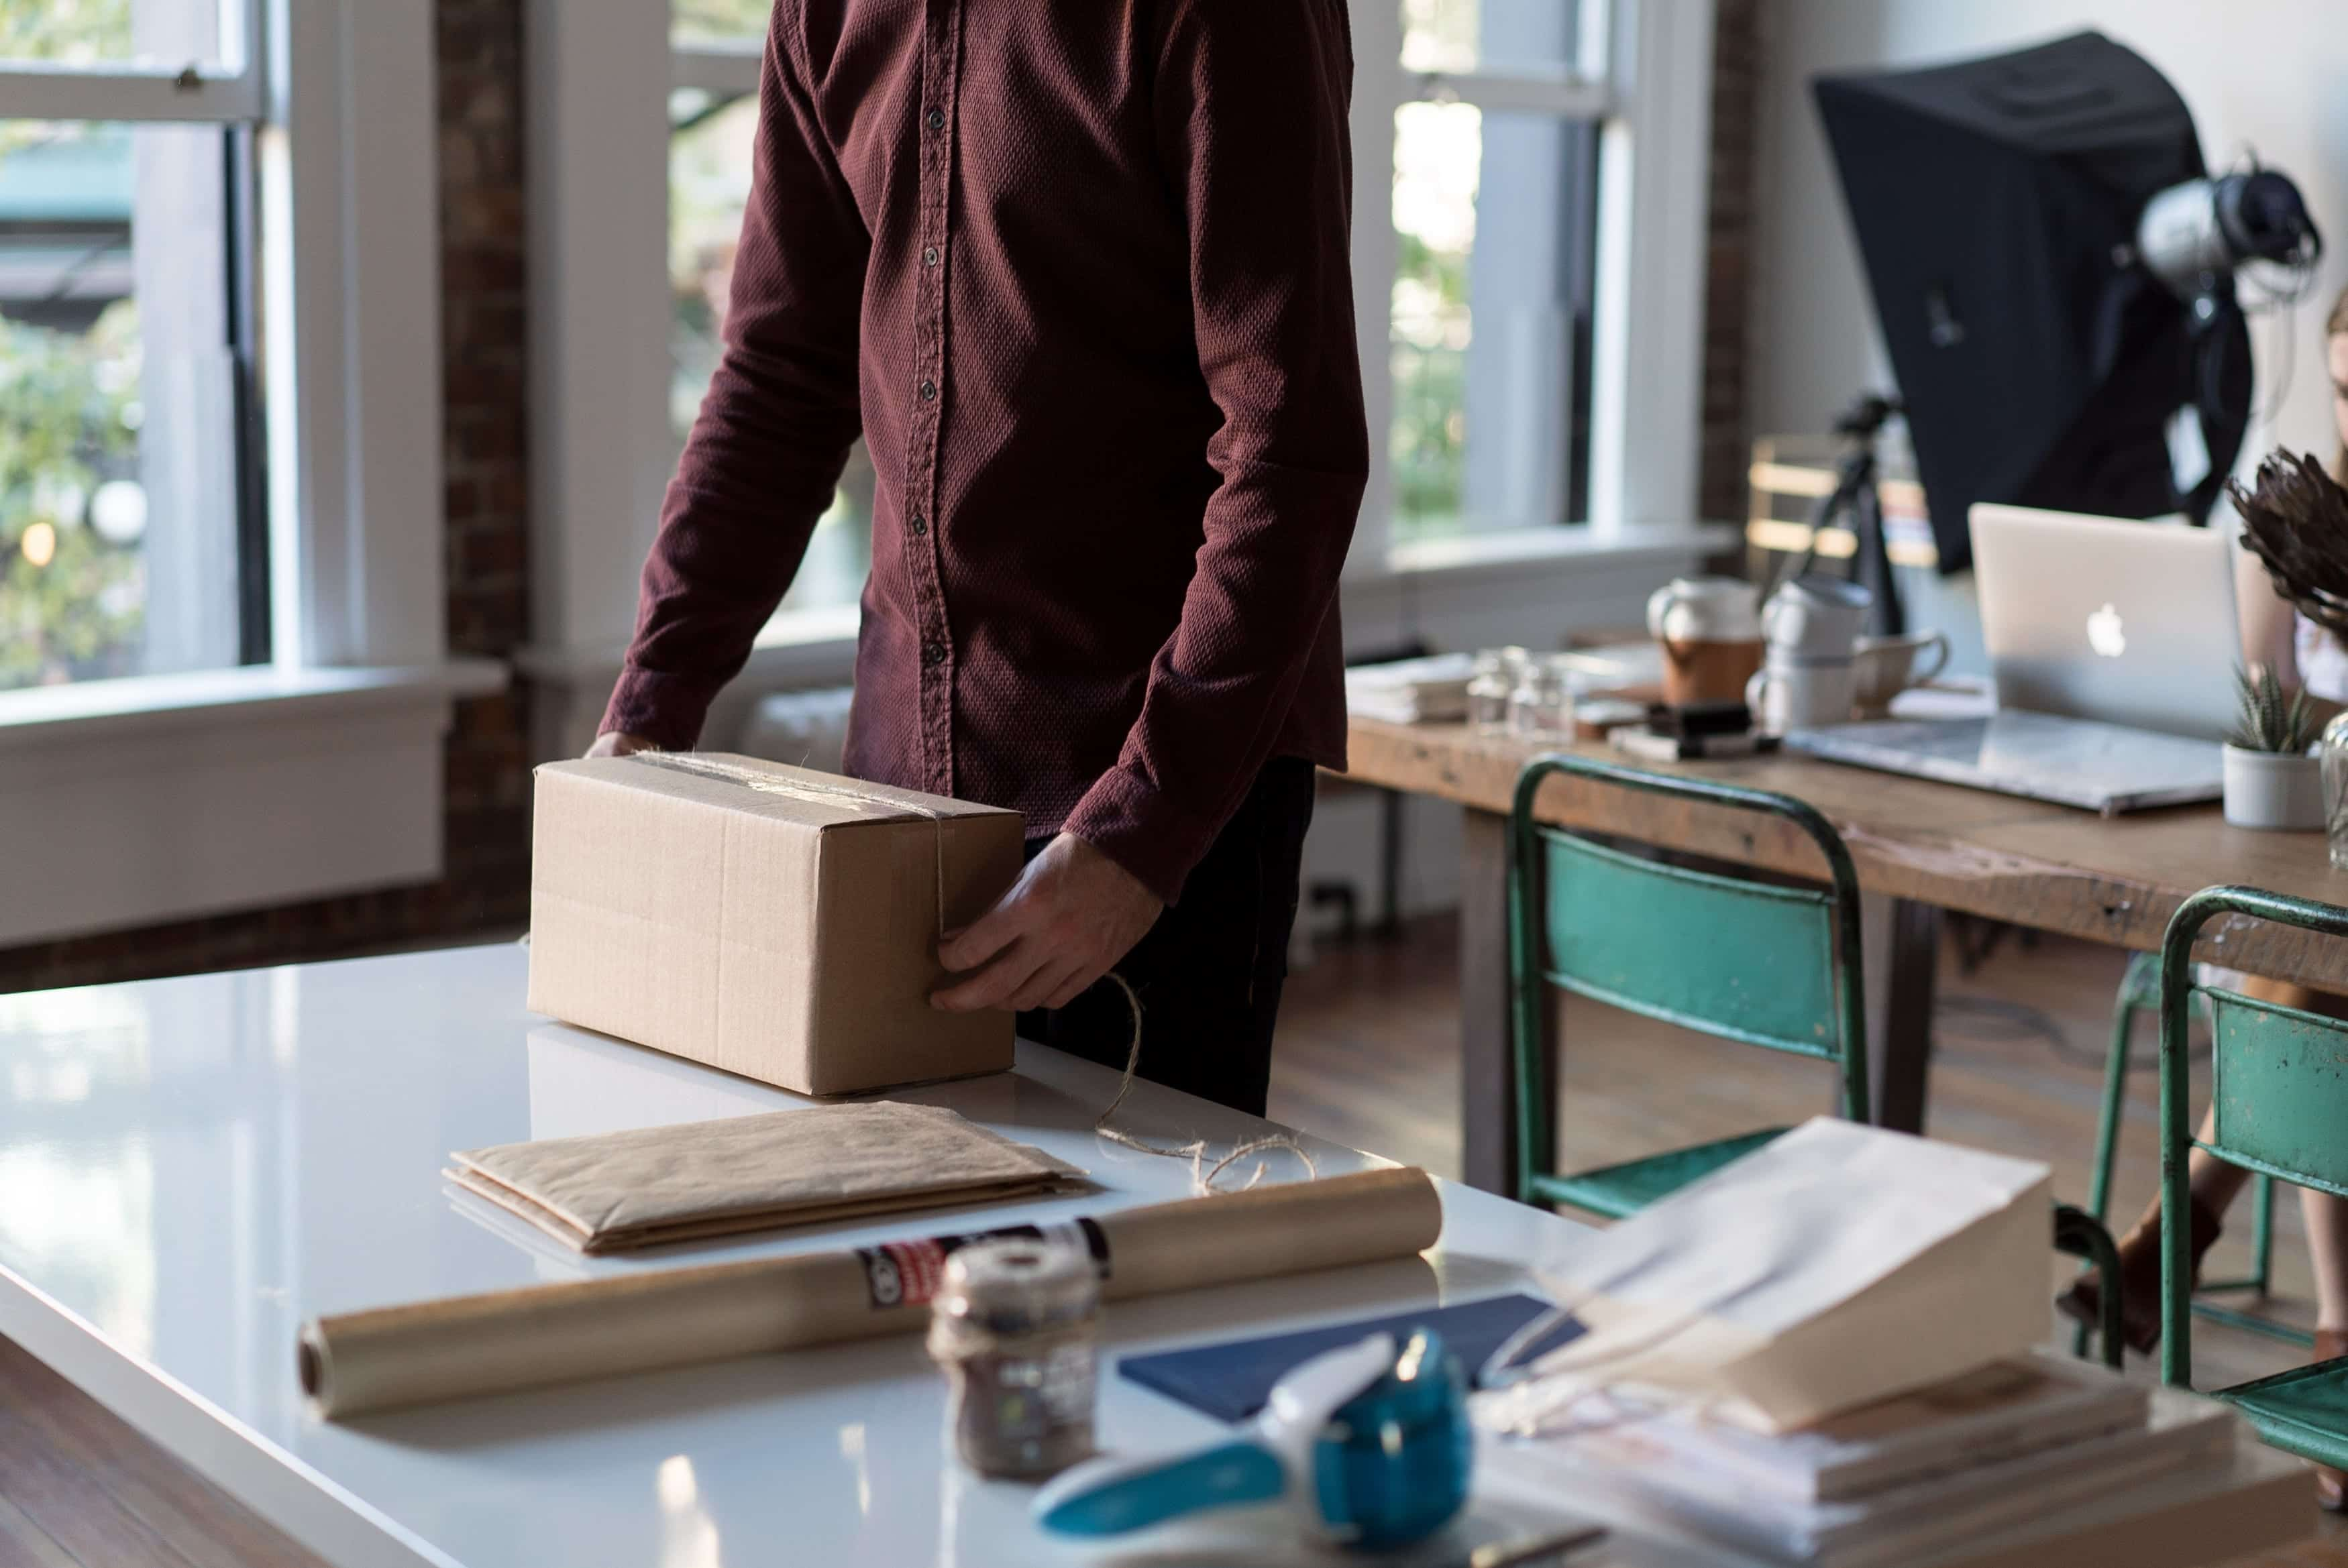 Man in maroon shirt packing a box in the office; image by Bench Accounting, via Unsplash.com.